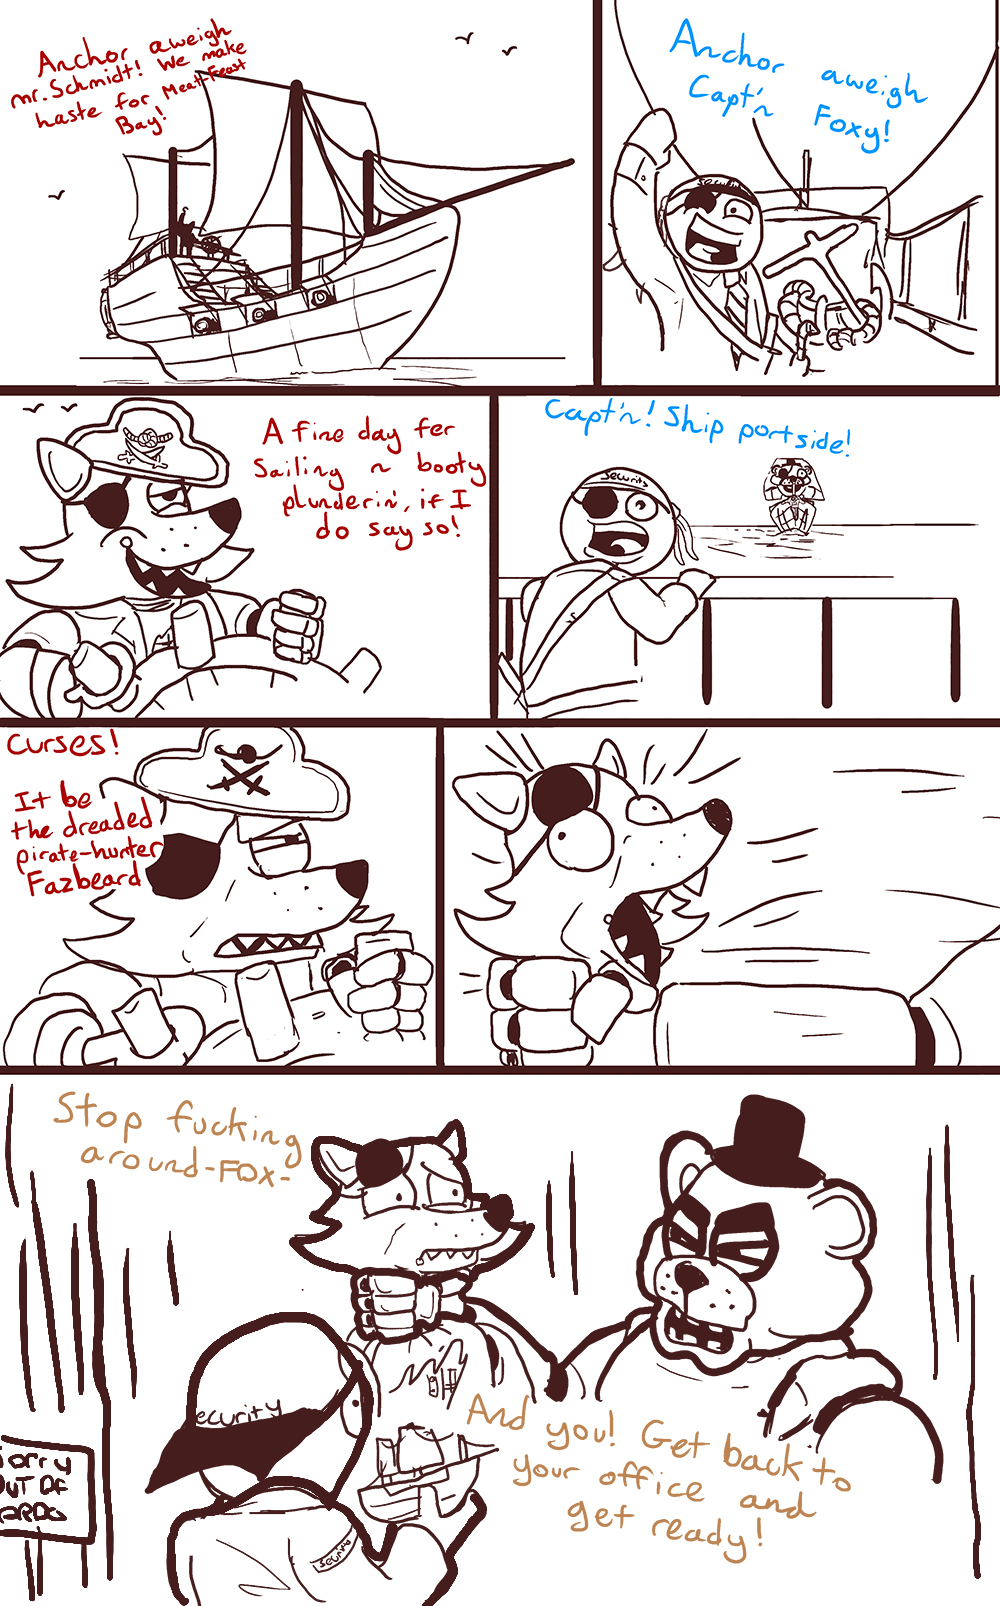 Fnaf Comics En Español image - 814536] | foxy | know your meme